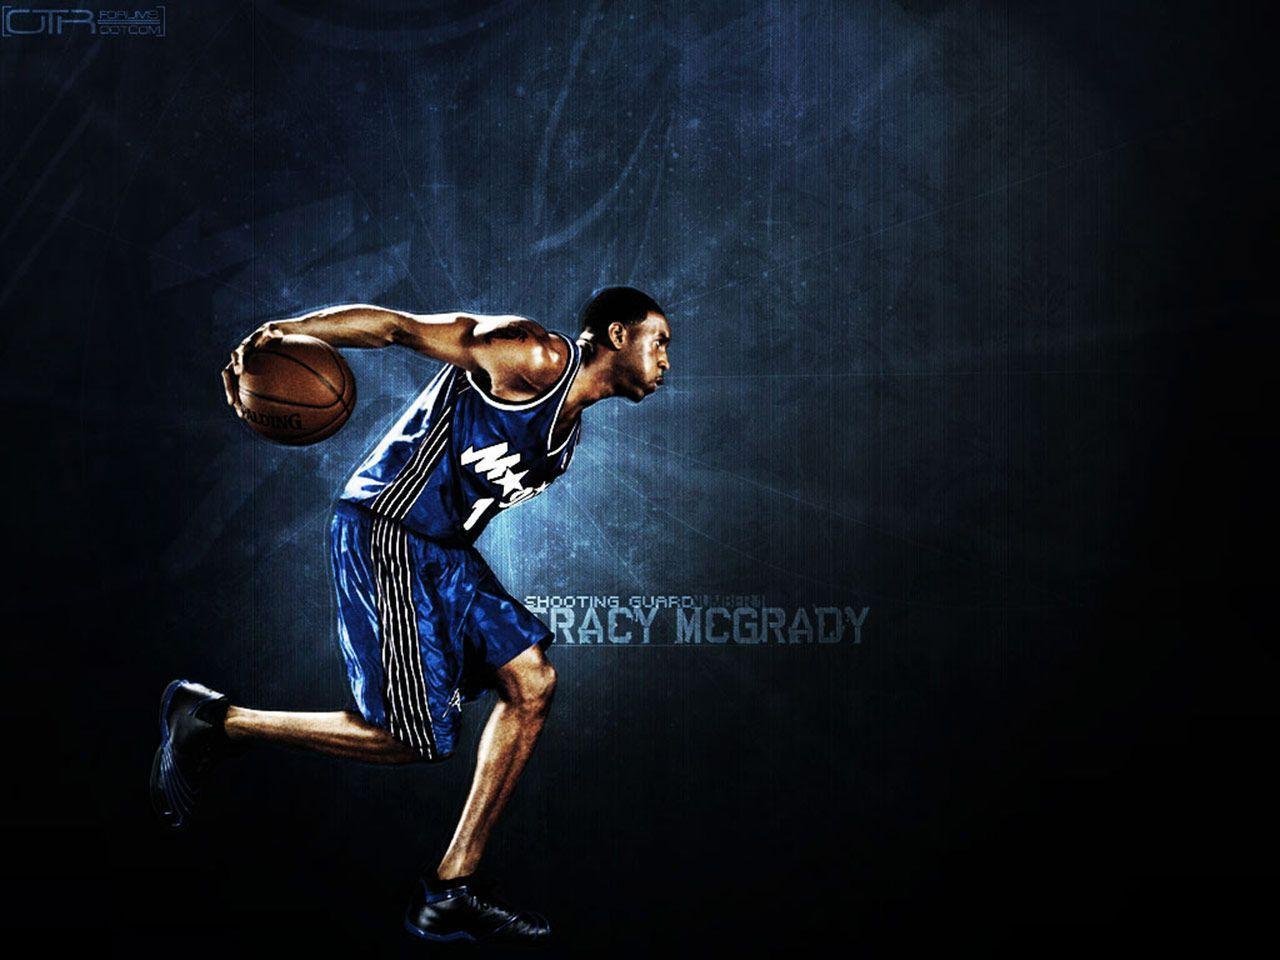 tracy mcgrady wallpaper desktop - photo #3